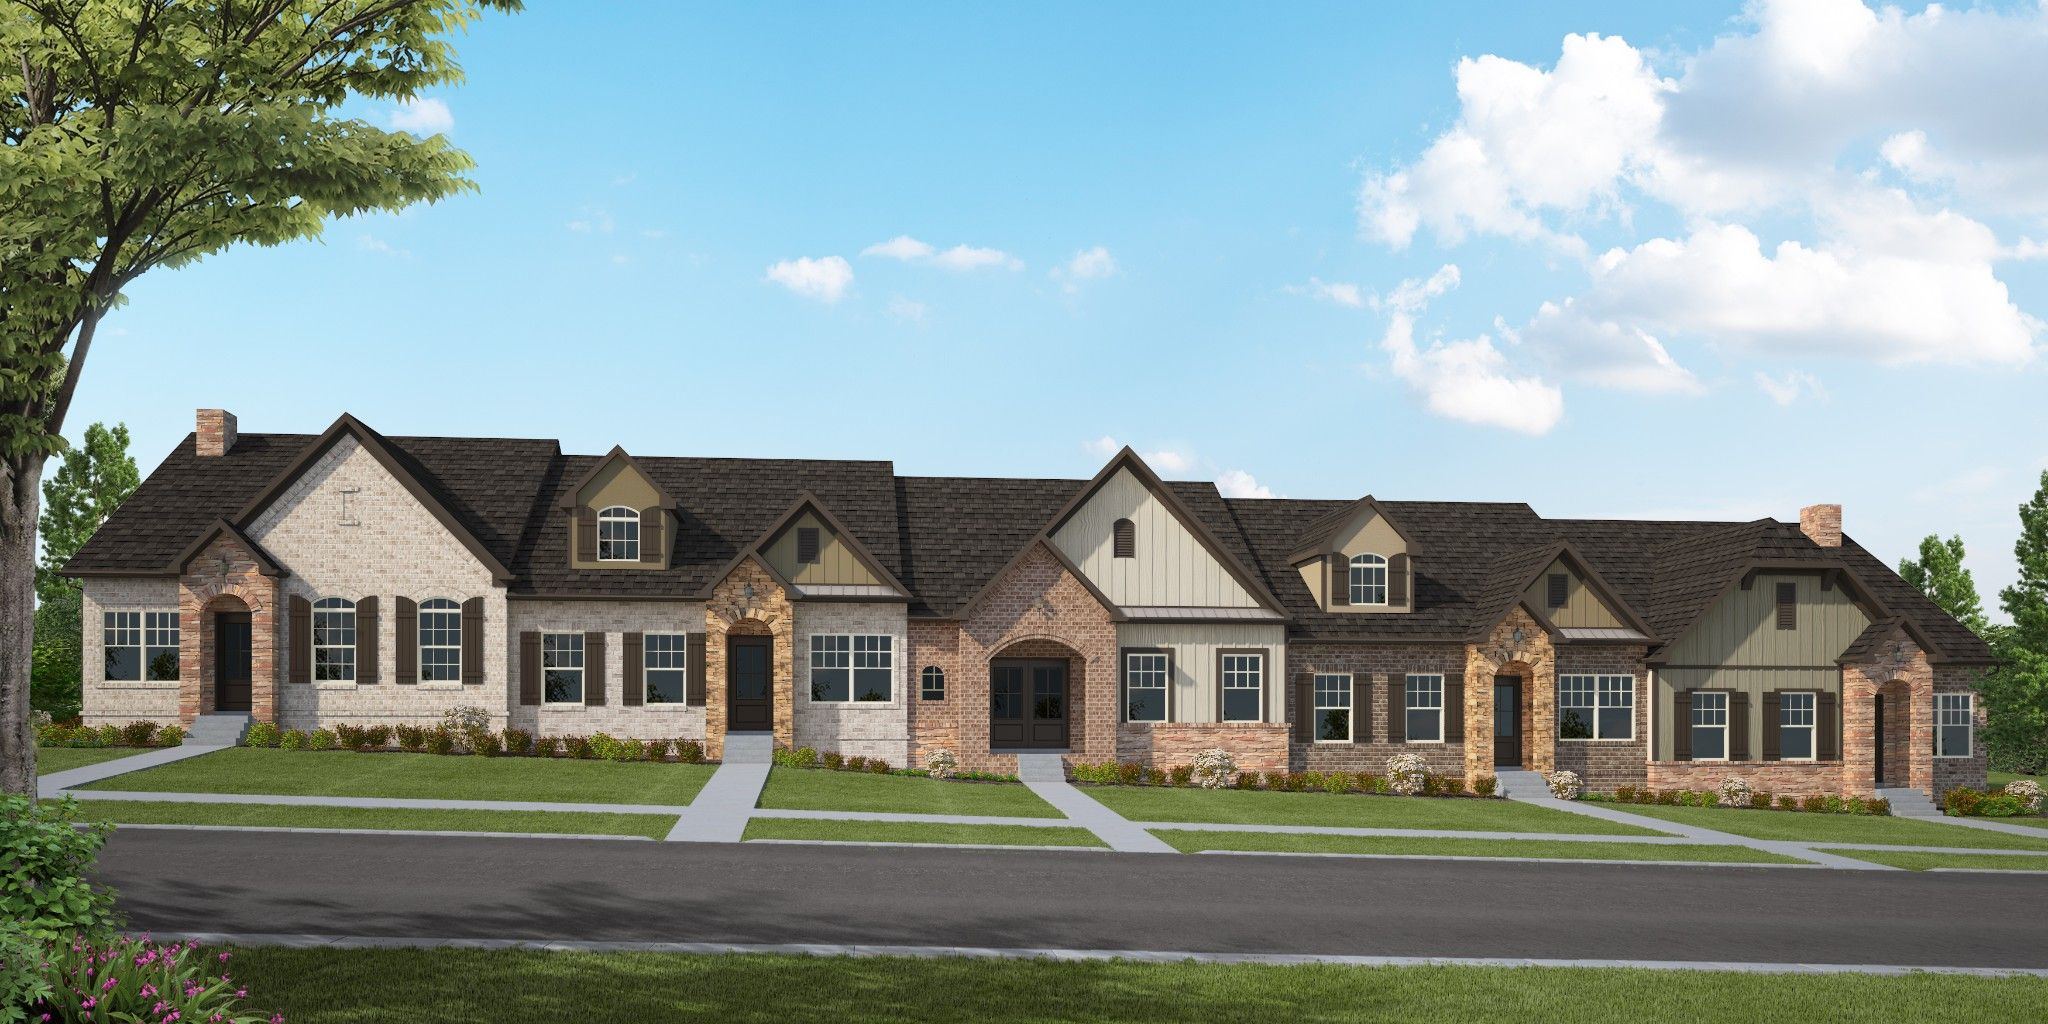 'Groves Park Cottages' by Goodall Homes in Knoxville